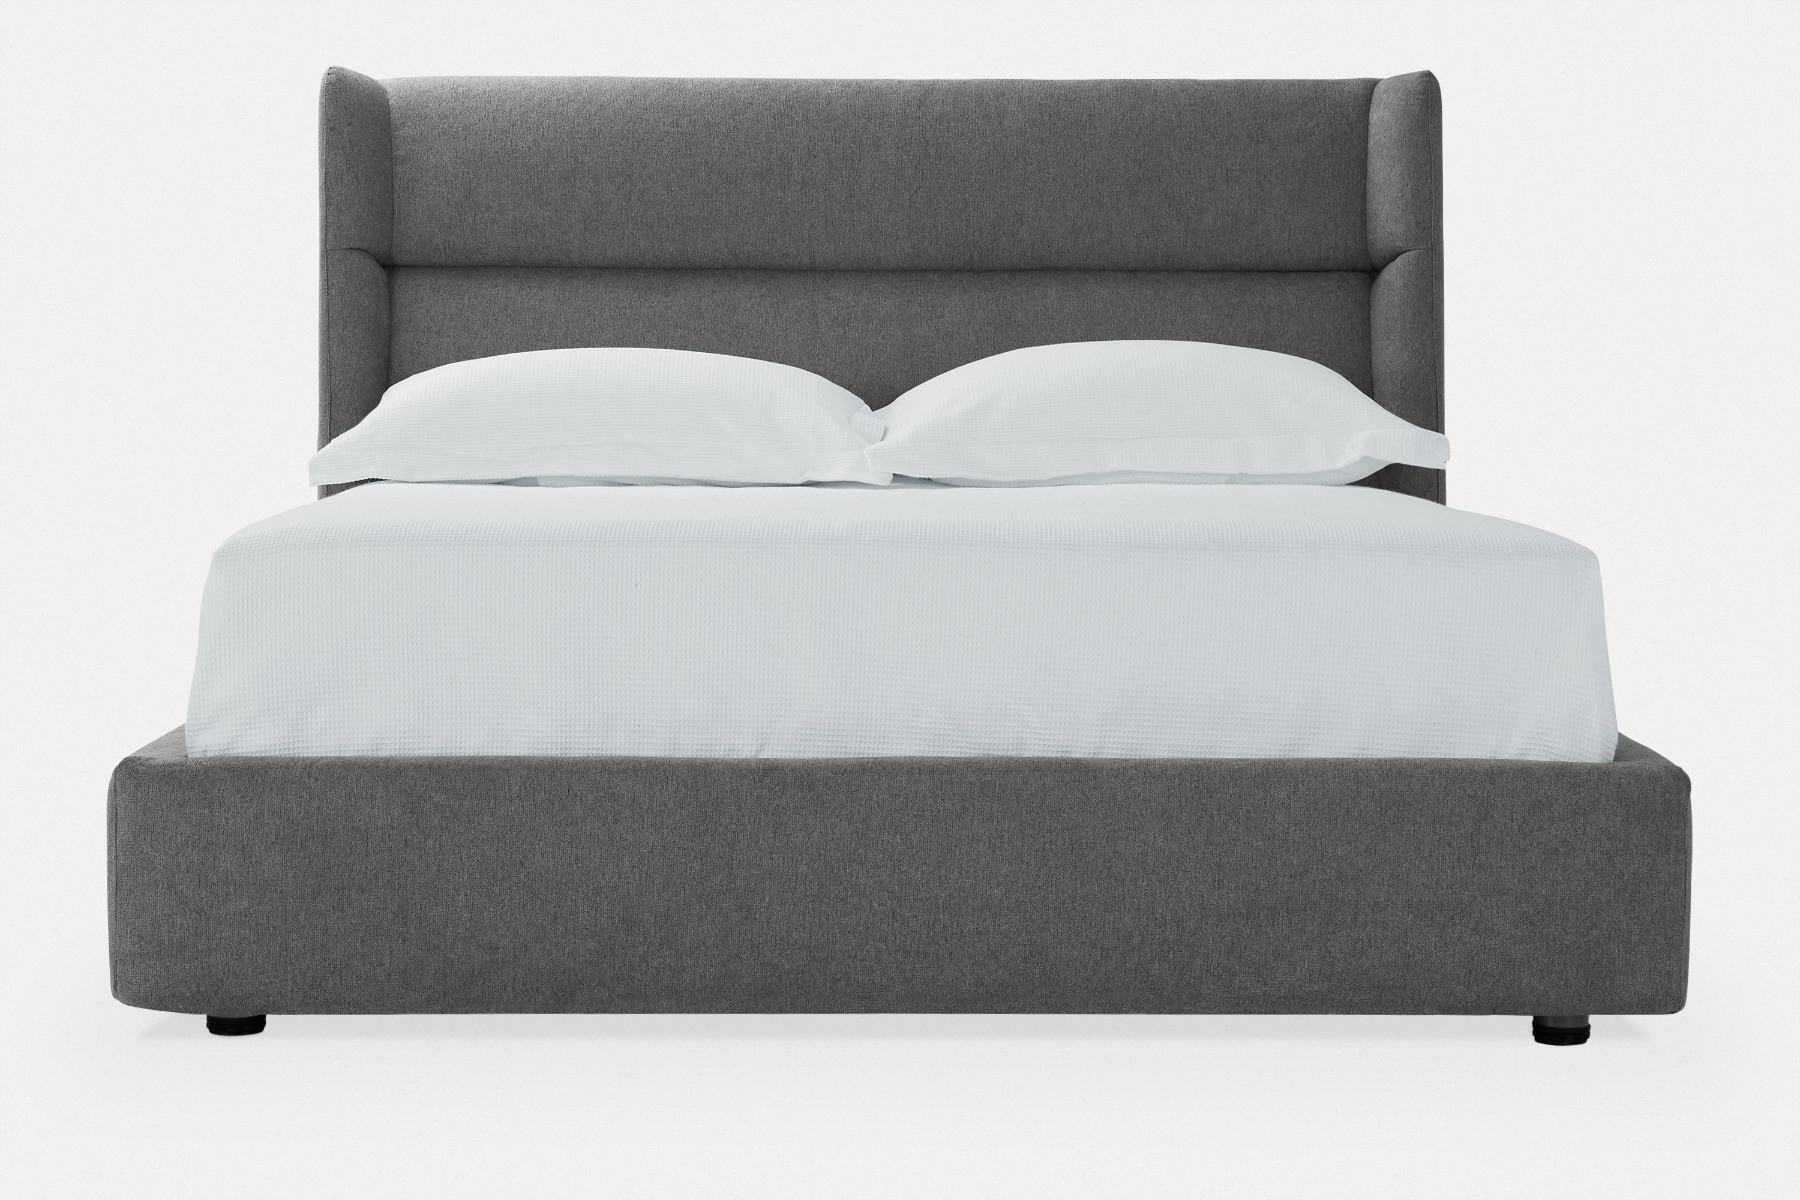 Benjamin Upholstered Bed With Storage Maison Corbeil